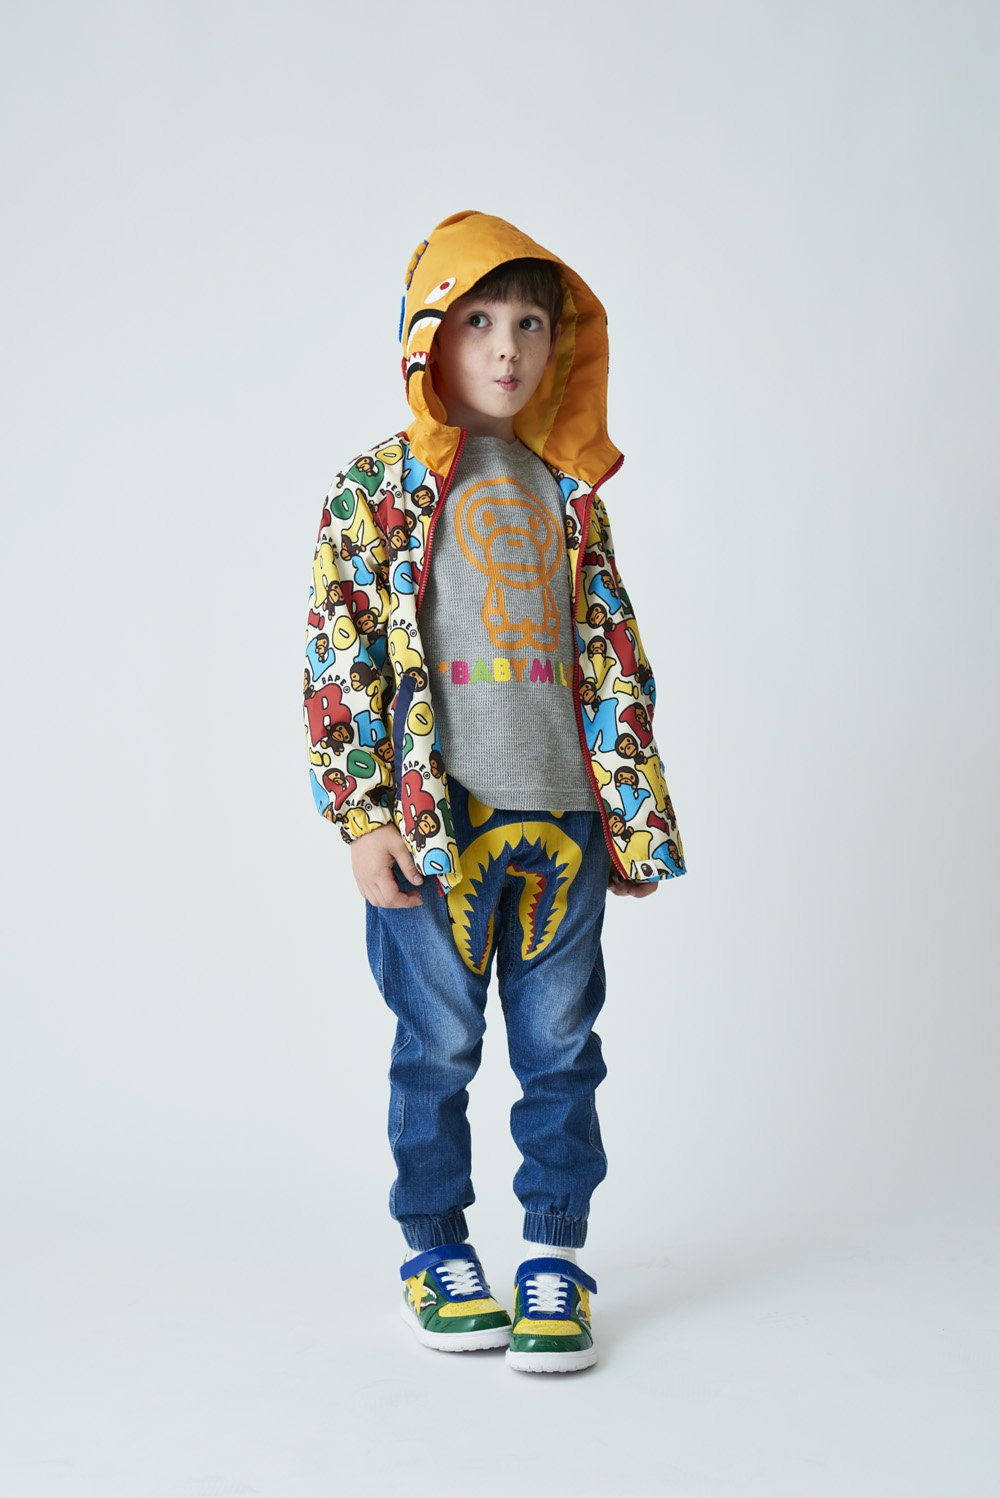 2020 AW KIDS'/JUNIORS' LOOKBOOK 1